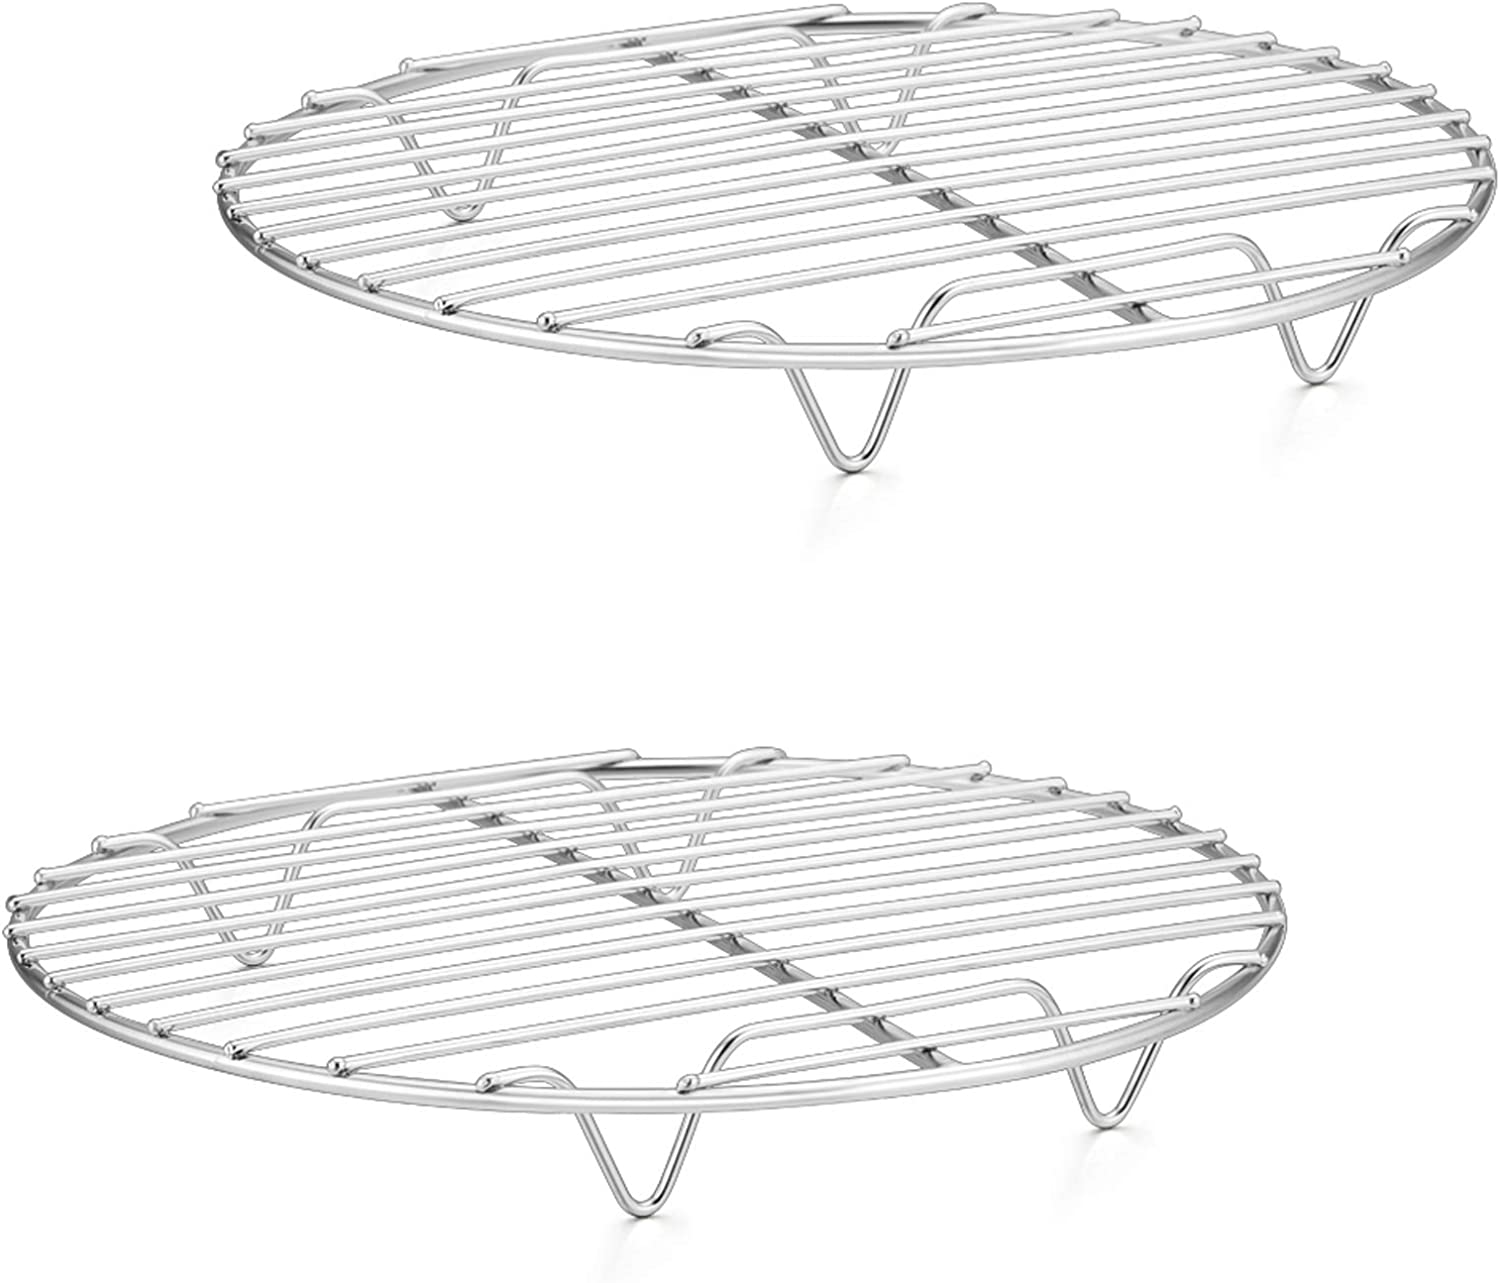 P&P CHEF Cooking Rack Round, 9-Inch Stainless Steel Round Rack for cooking Cooling Steaming Baking, Fit Air Fryer Stockpot Pressure Cooker, 2 PACK -Oven & Dishwasher Safe